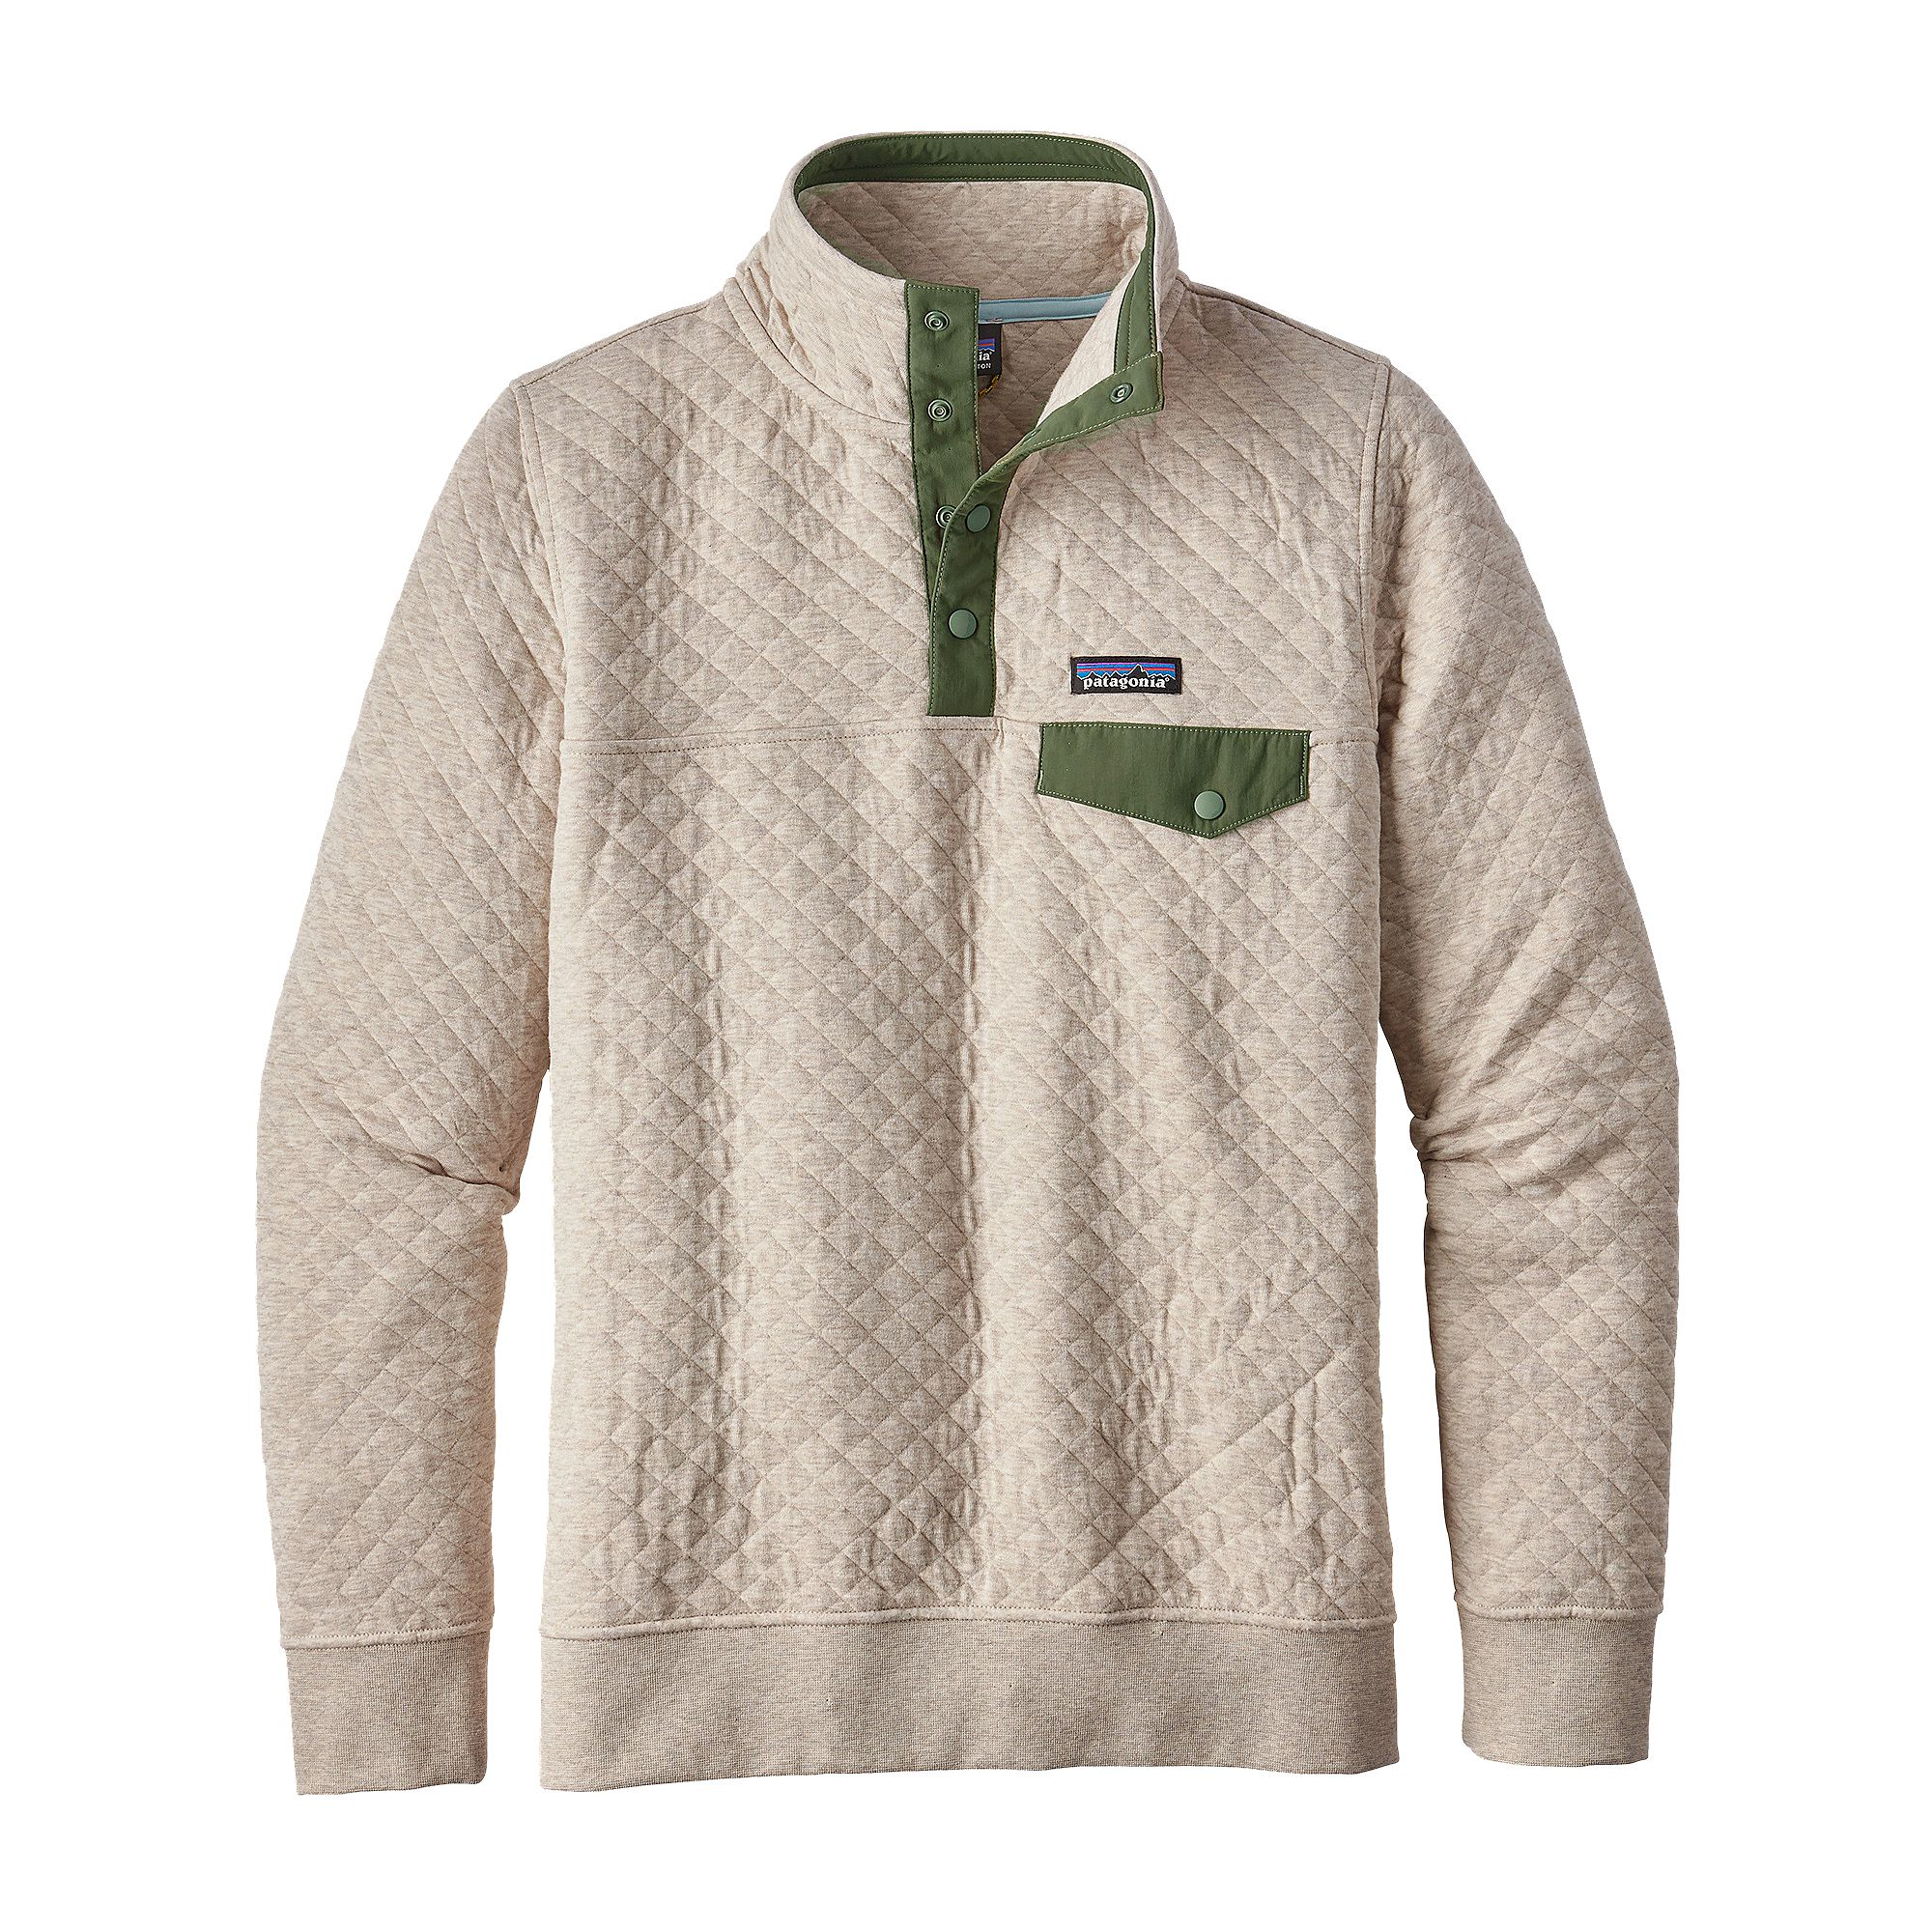 PATAGONIA WOMEN'S COTTON QUILT SNAP-T PULLOVER (25281)